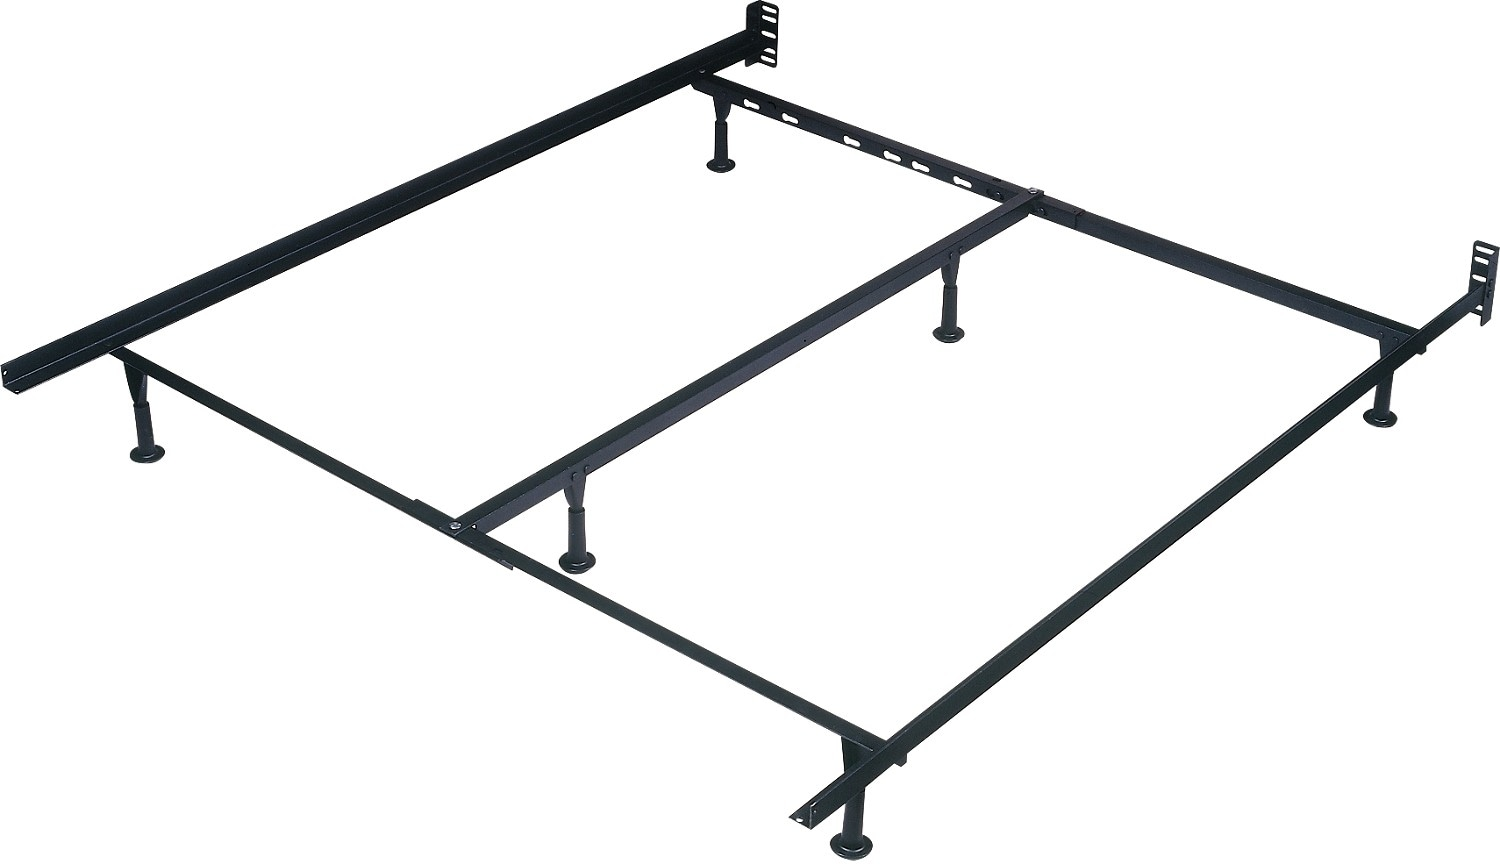 Steel Bed Frames Queen Metal Bed Frames Queen Size Extra: Extra Long Deluxe Twin / Full / Queen Glide Bedframe